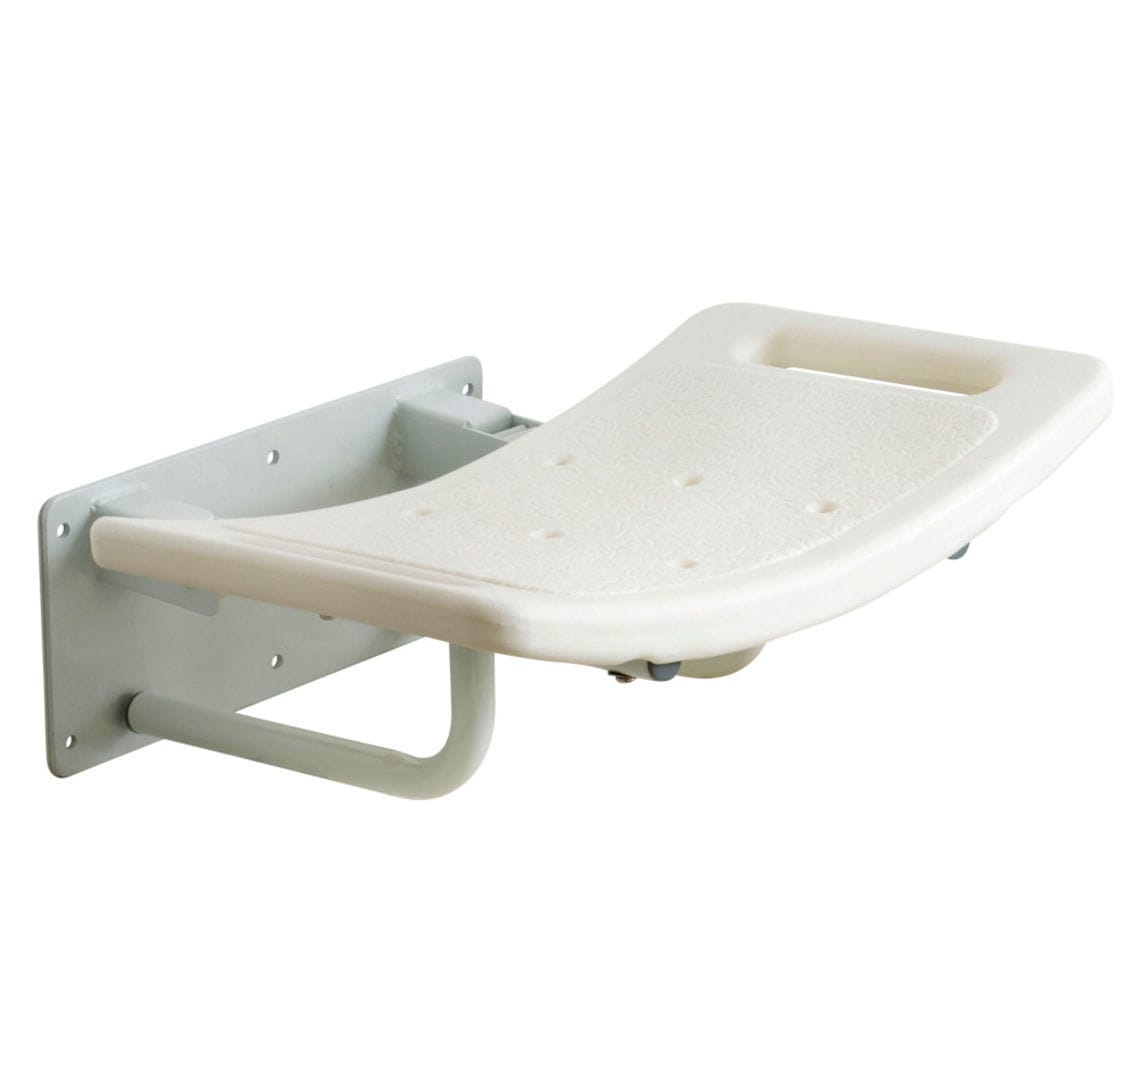 Shower seat / fold-down / wall-mounted - SWALL001, SWALL002 ...